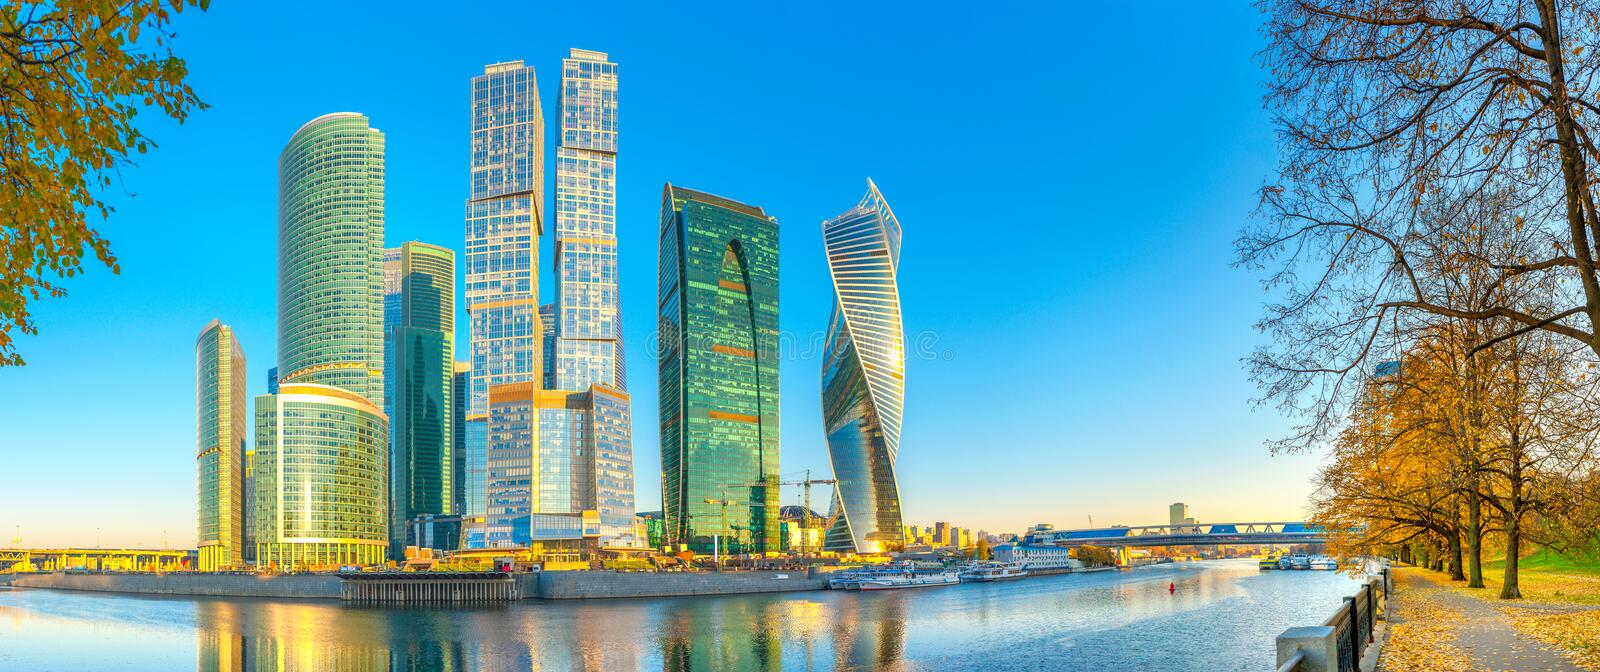 Panorama of the skyscrapers of the business center of Moscow from the embankment of the Moskva River royalty free stock photos